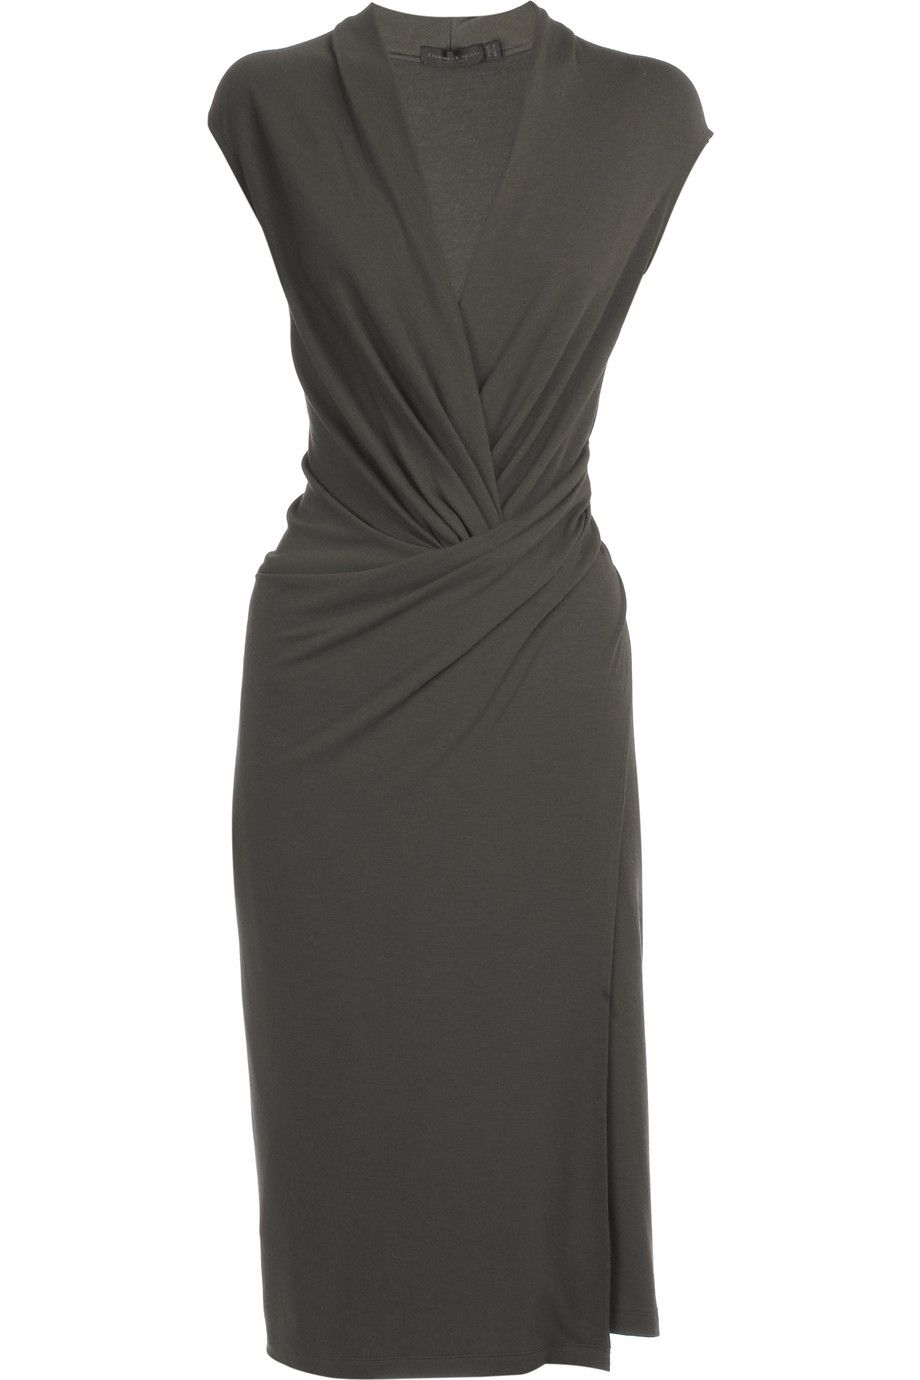 Wool jersey sheath dress by Donna Karan